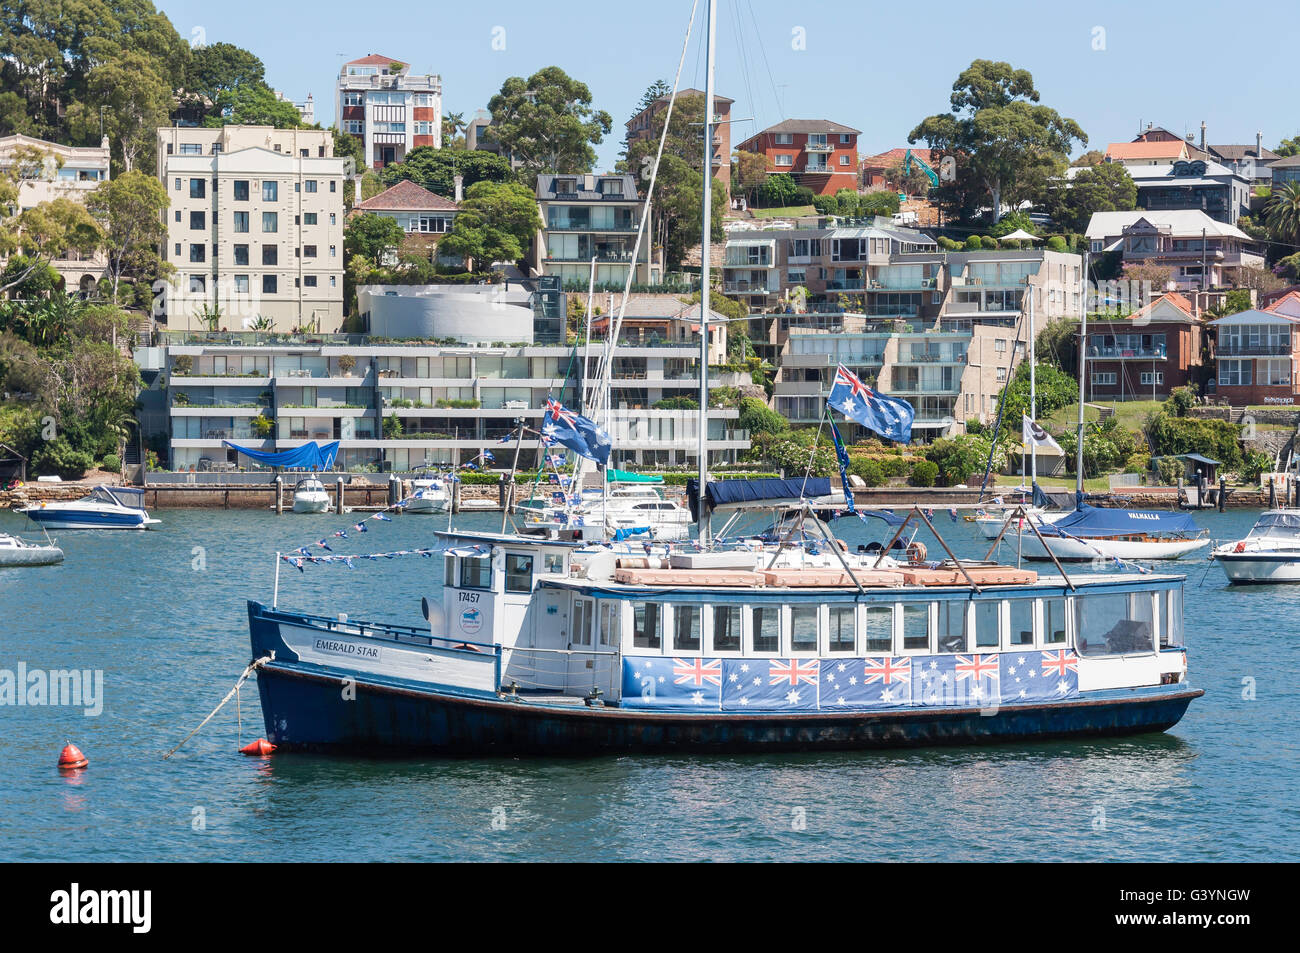 Emerald Star cruise boat at anchor, Lavender Bay, Sydney, New South Wales, Australia - Stock Image